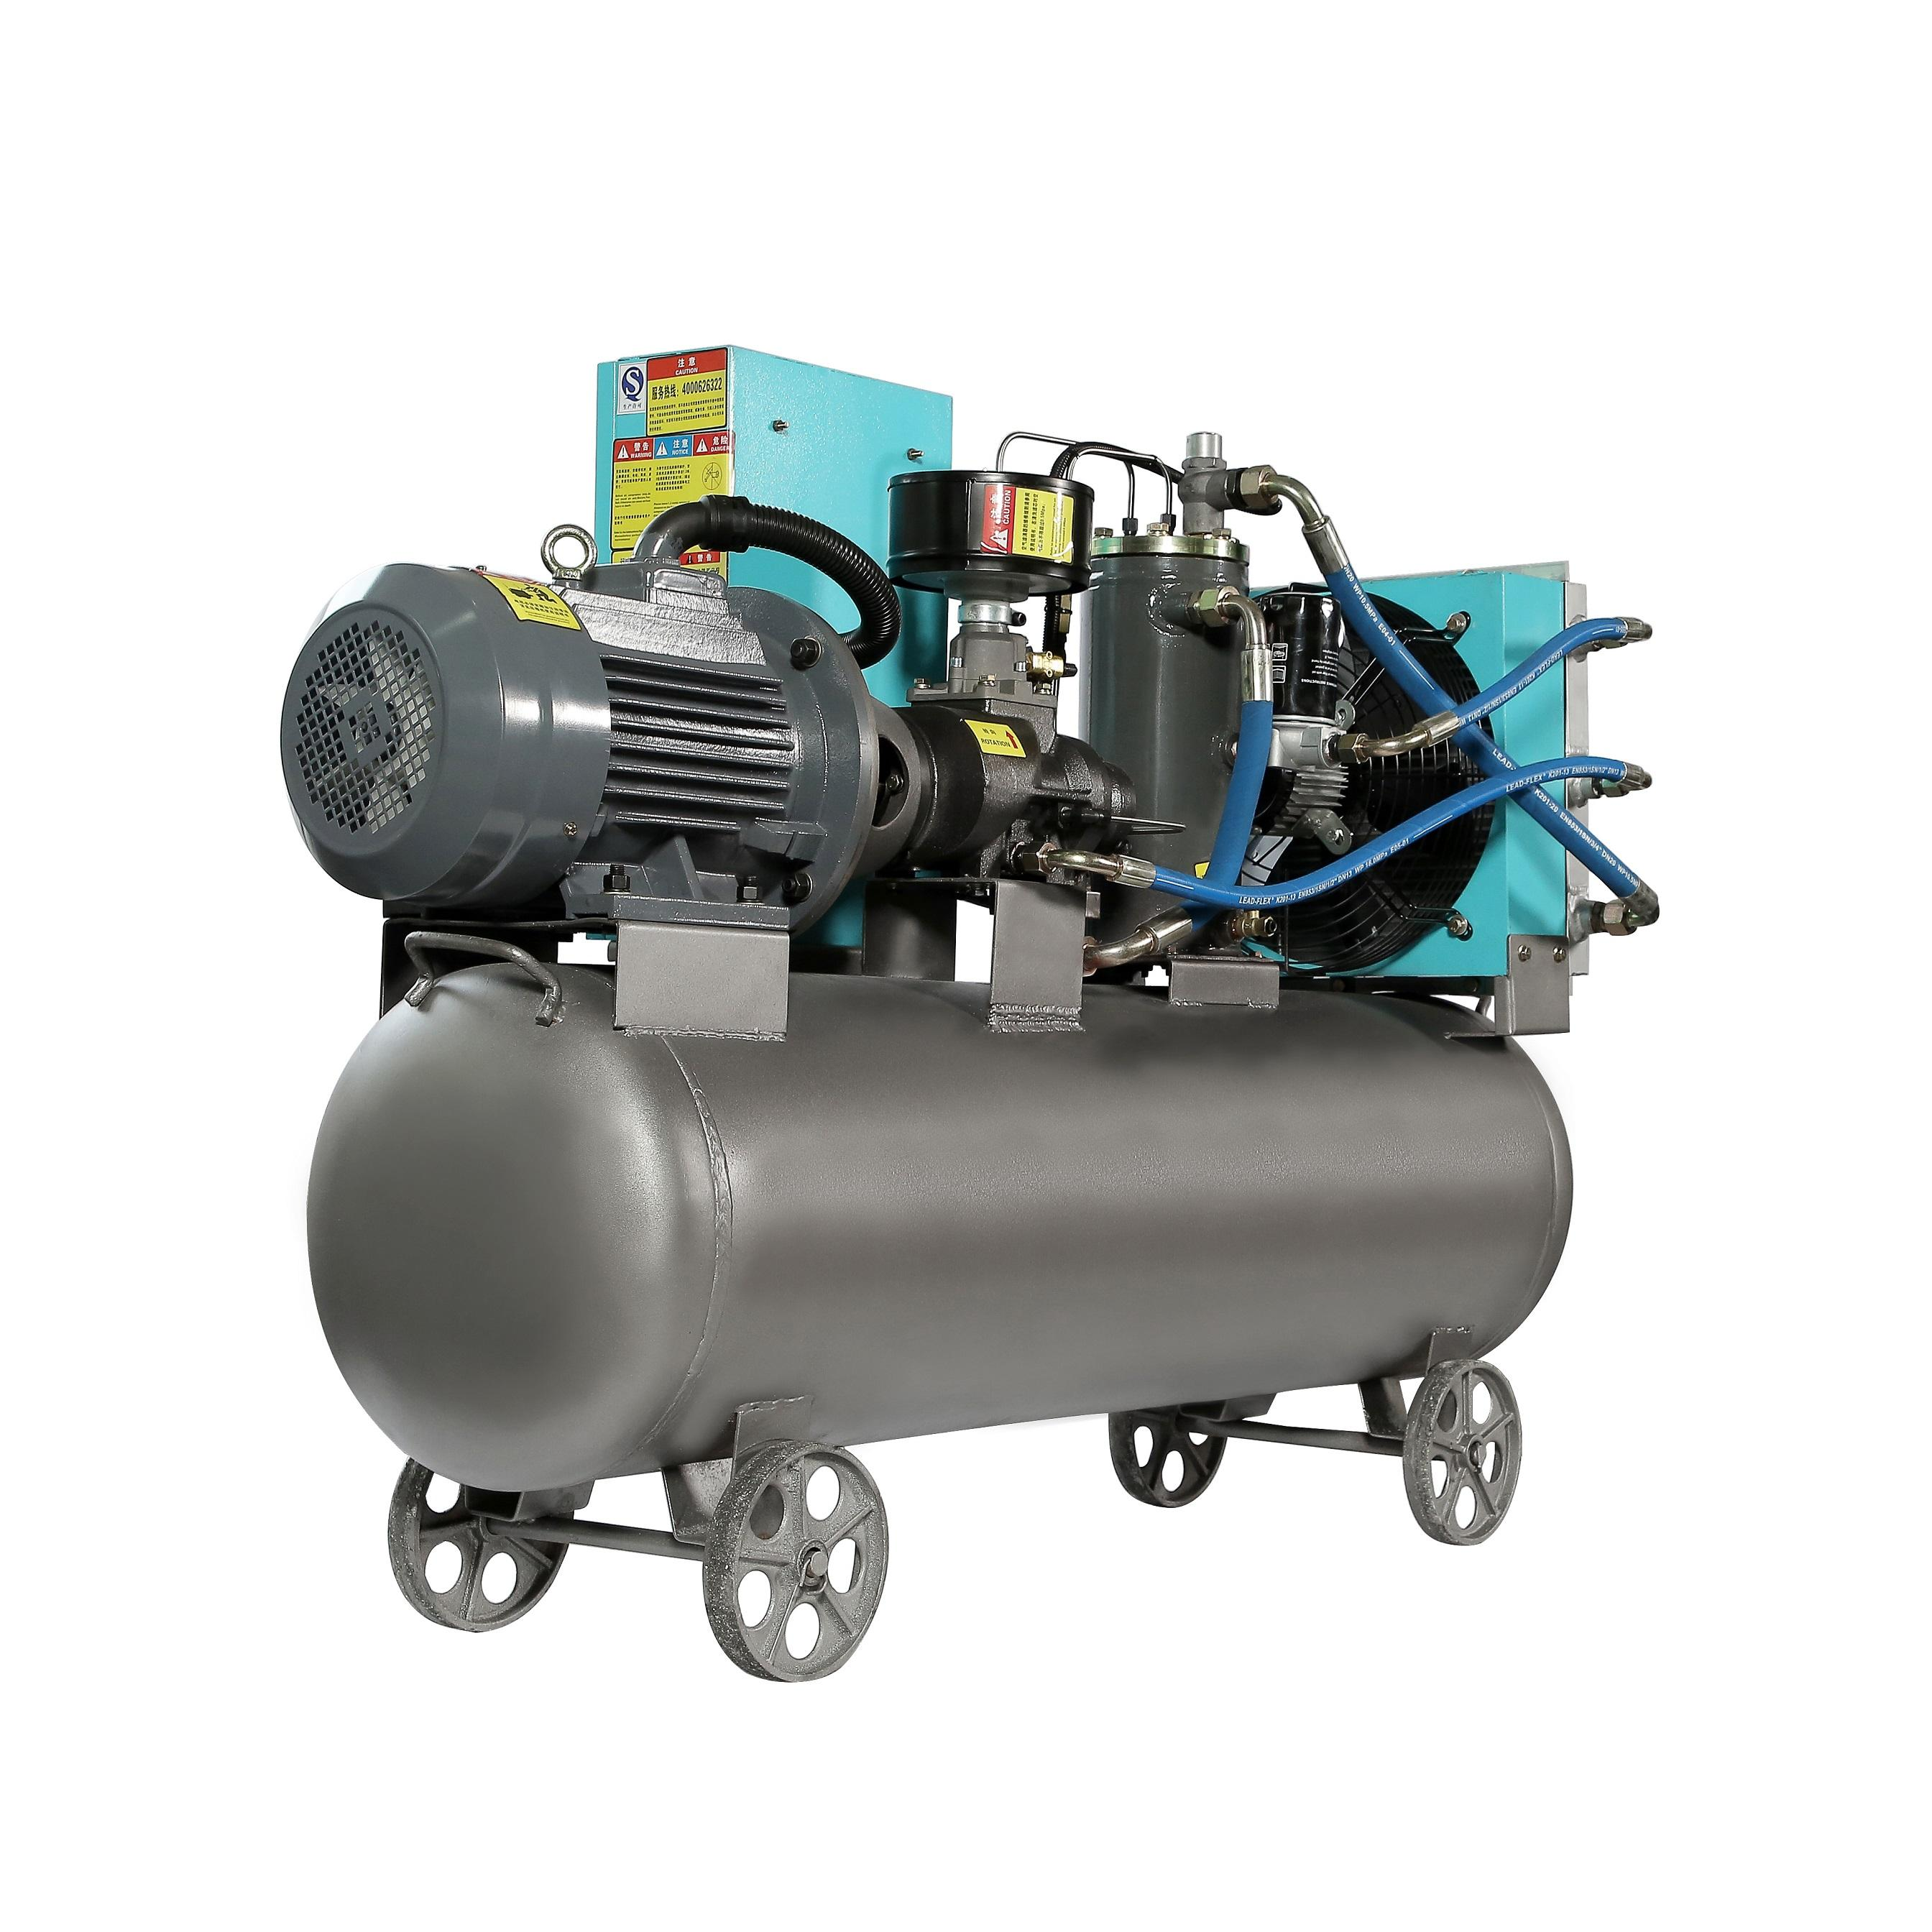 Grosir Italia AC Power Air Screw Compressor Industri 10hp